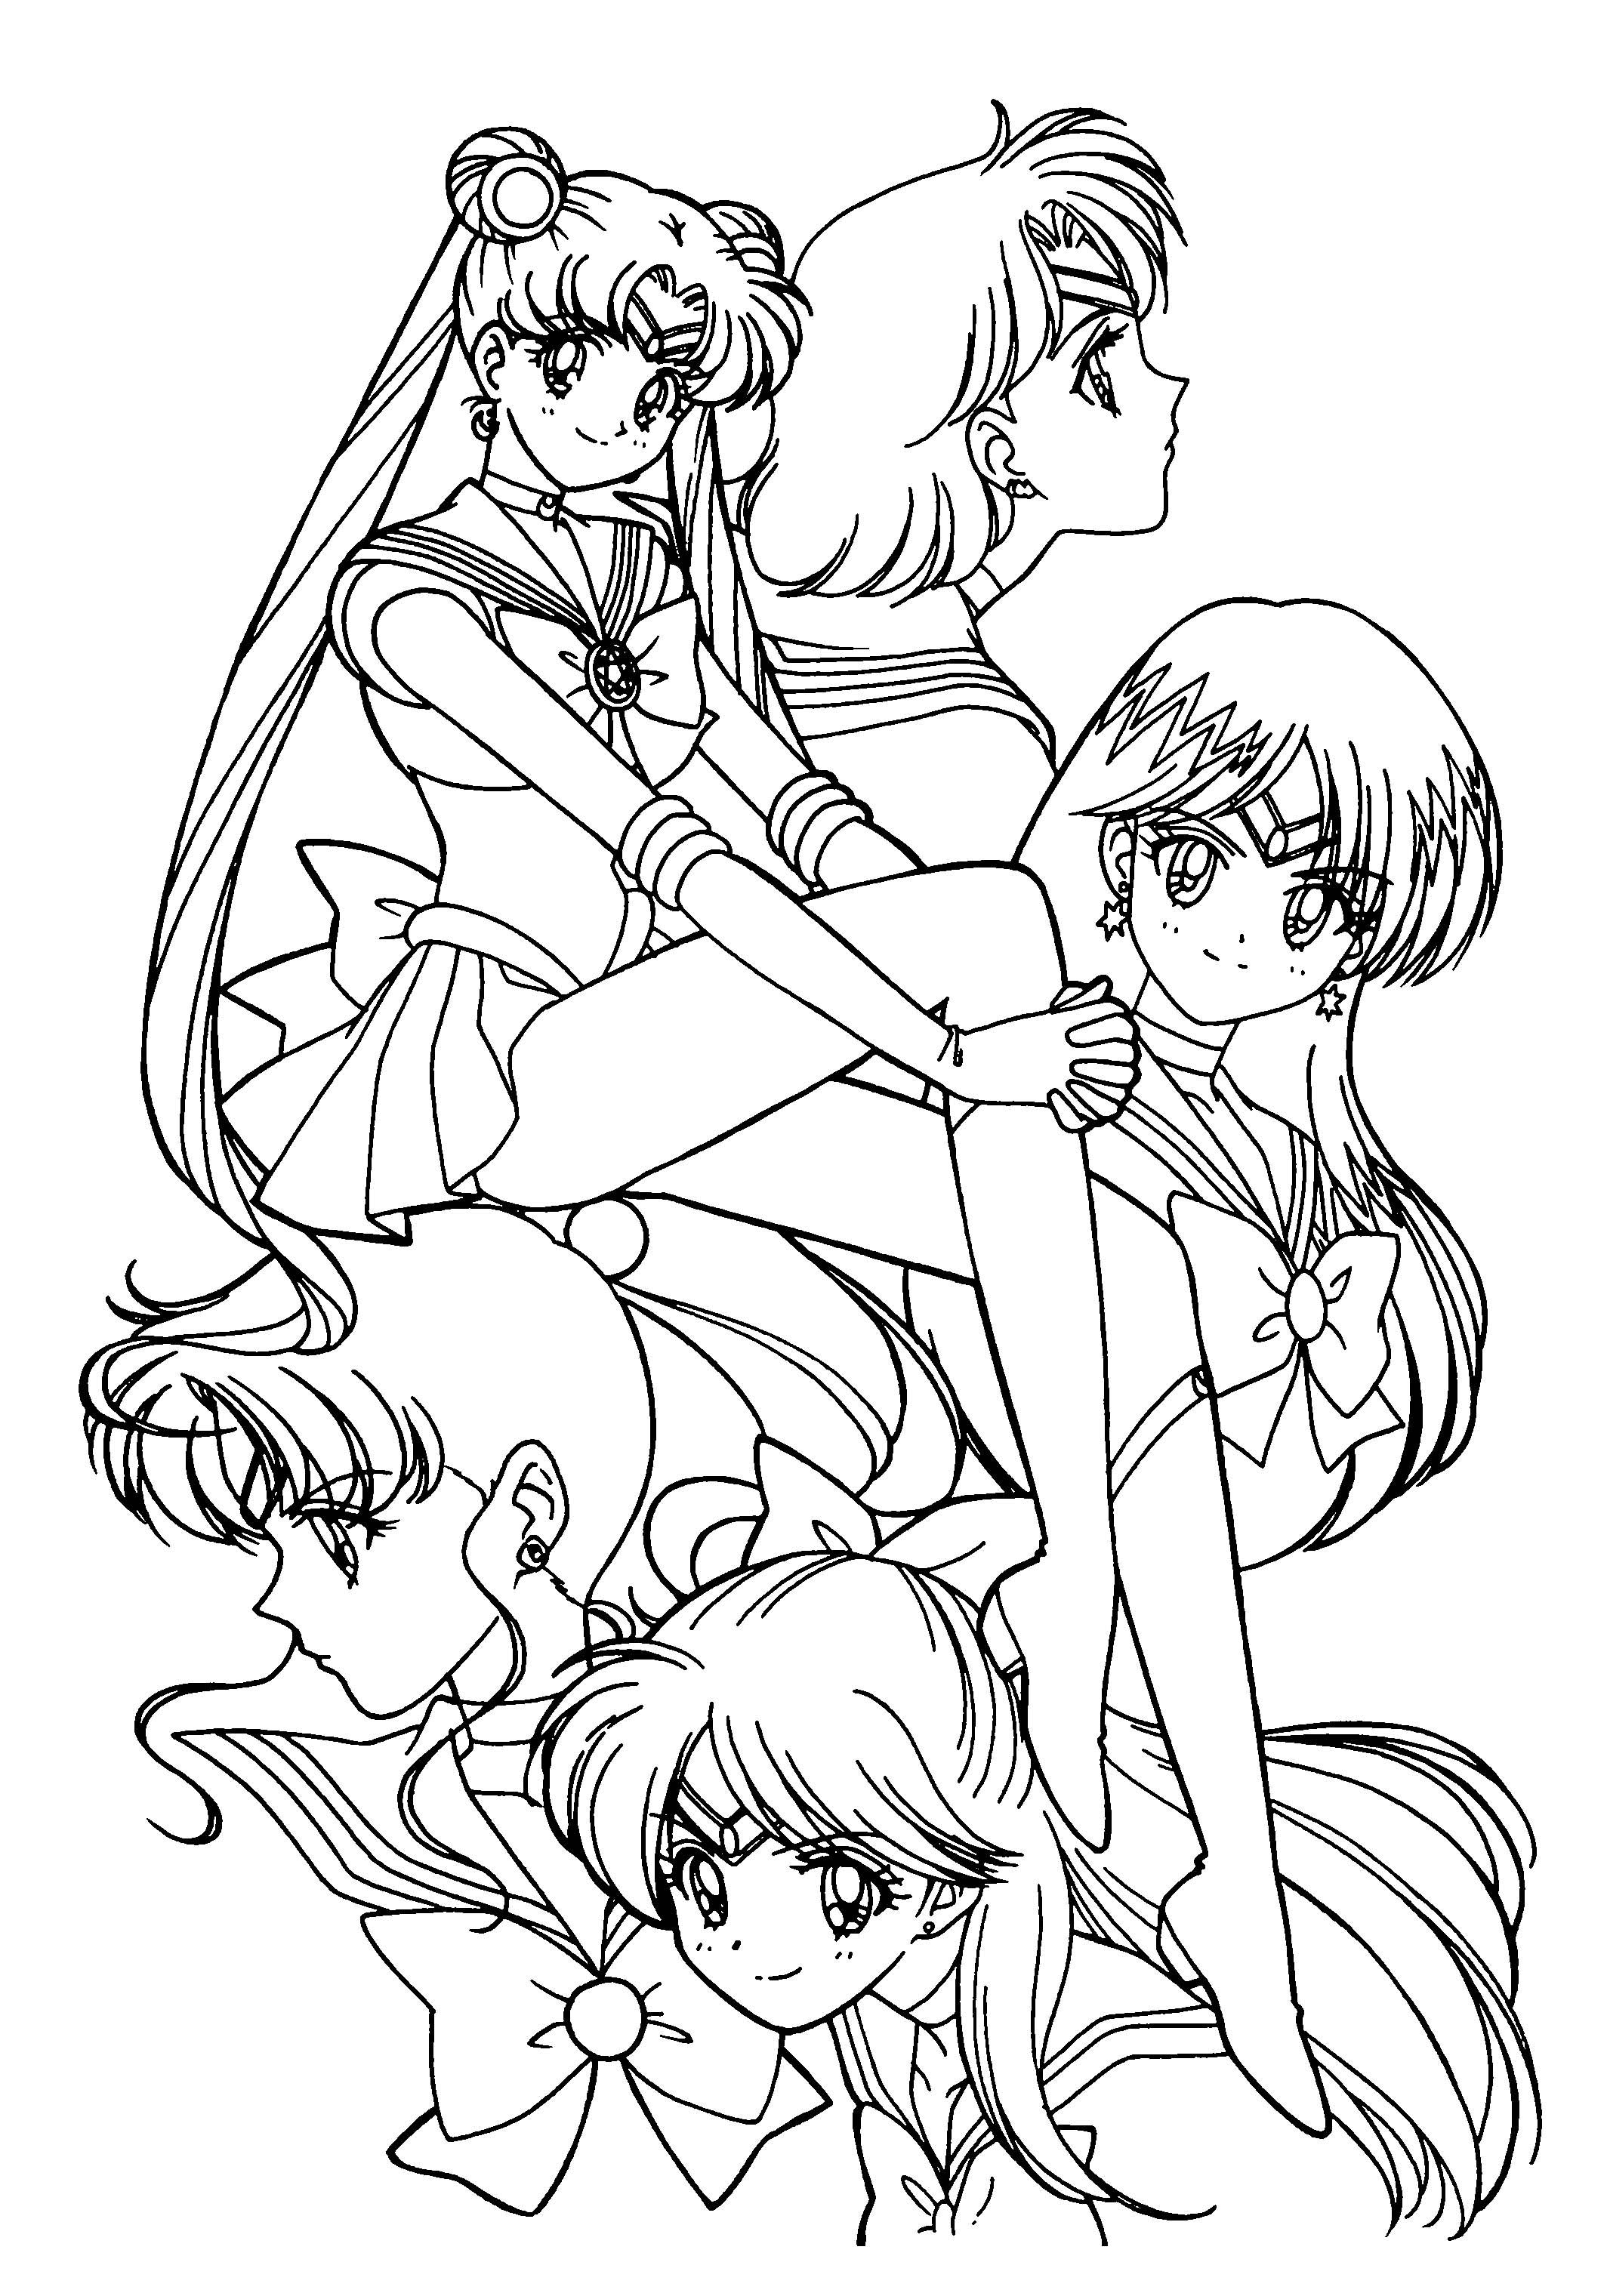 Sailor Moon Coloring Pages Printable Sailor Moon Coloring Pages Moon Coloring Pages Sailor Moon Character